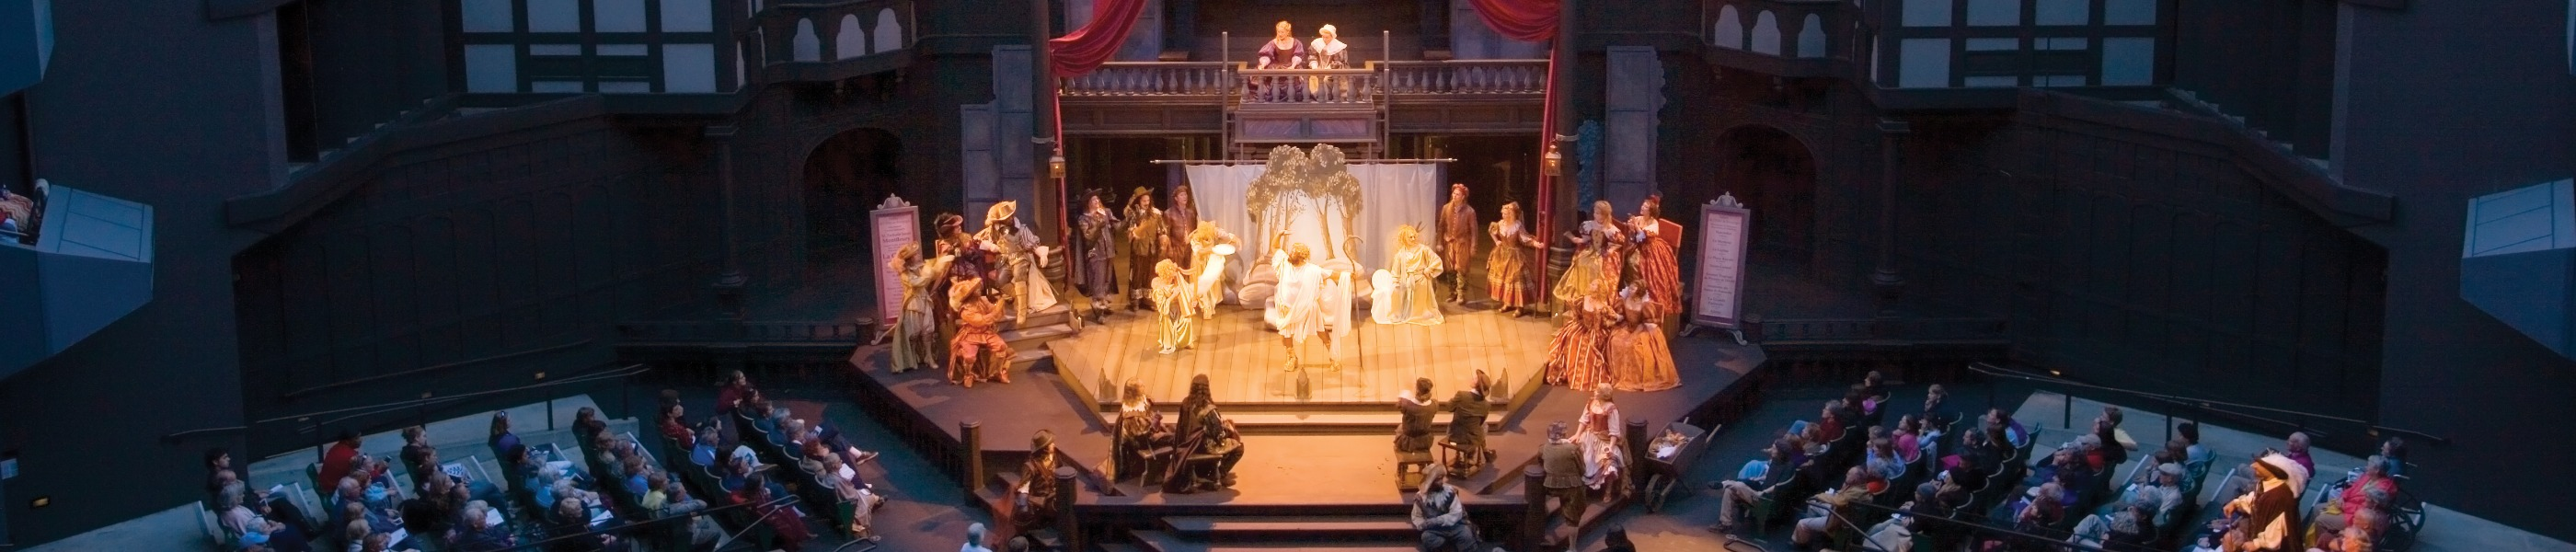 A play in session at the Oregon Shakespeare Festival